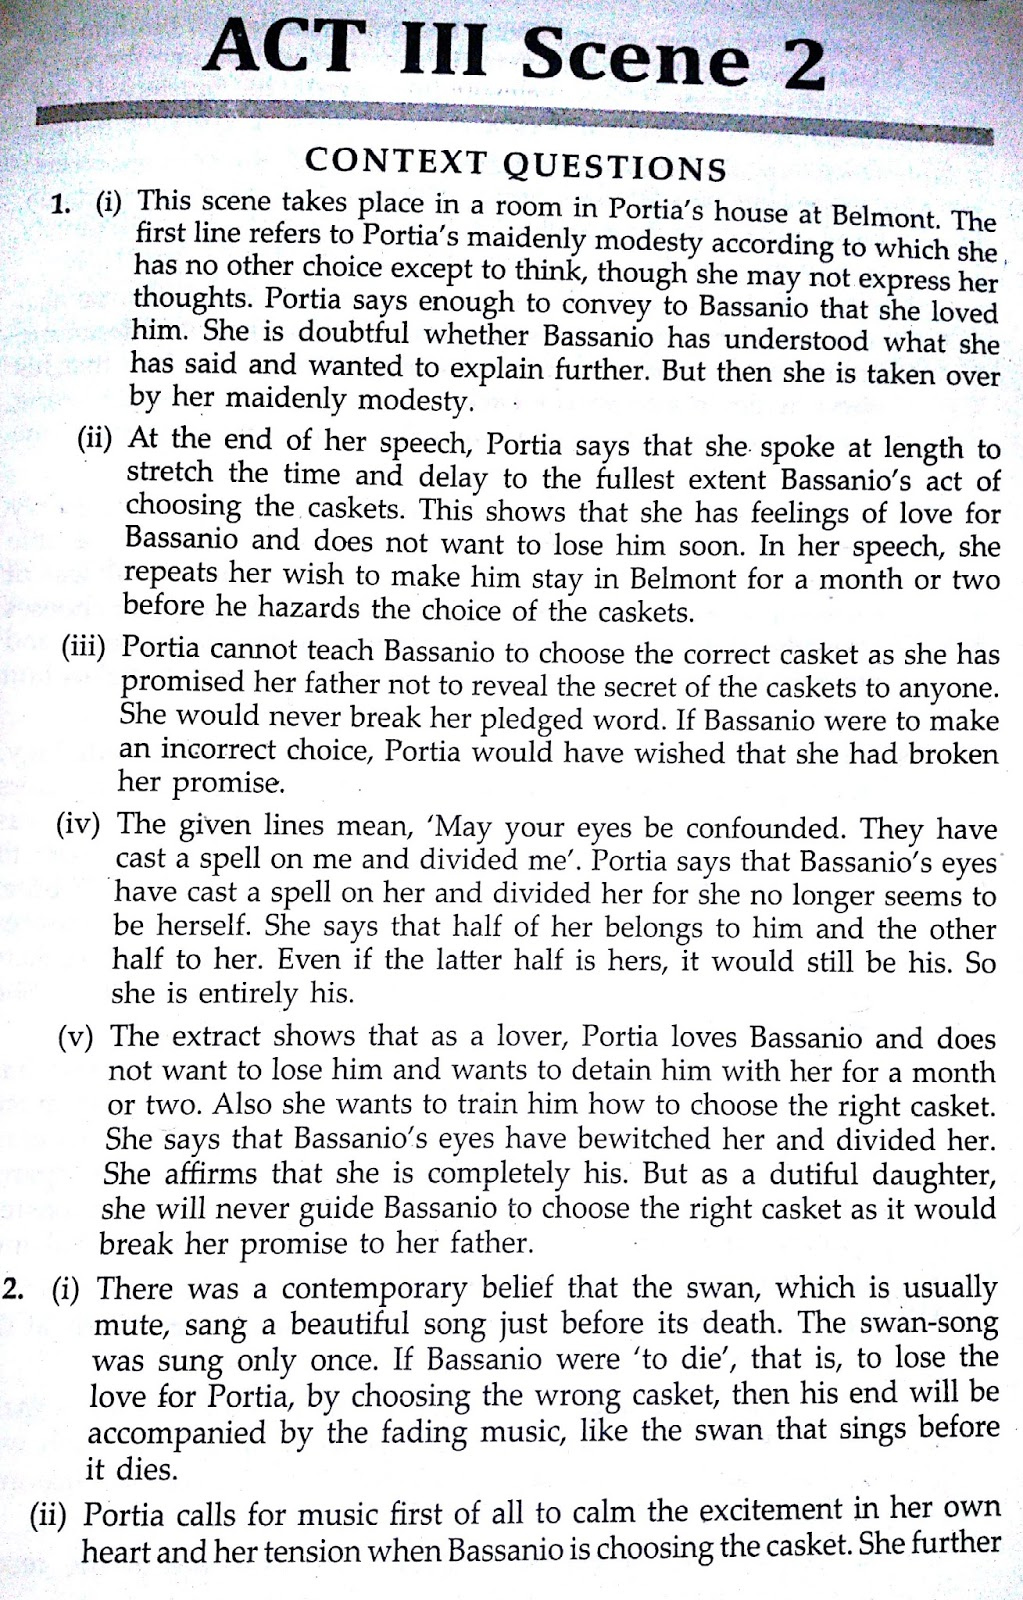 Workbook Answers/Solutions of The Merchant of Venice, Act 3 Scene 2